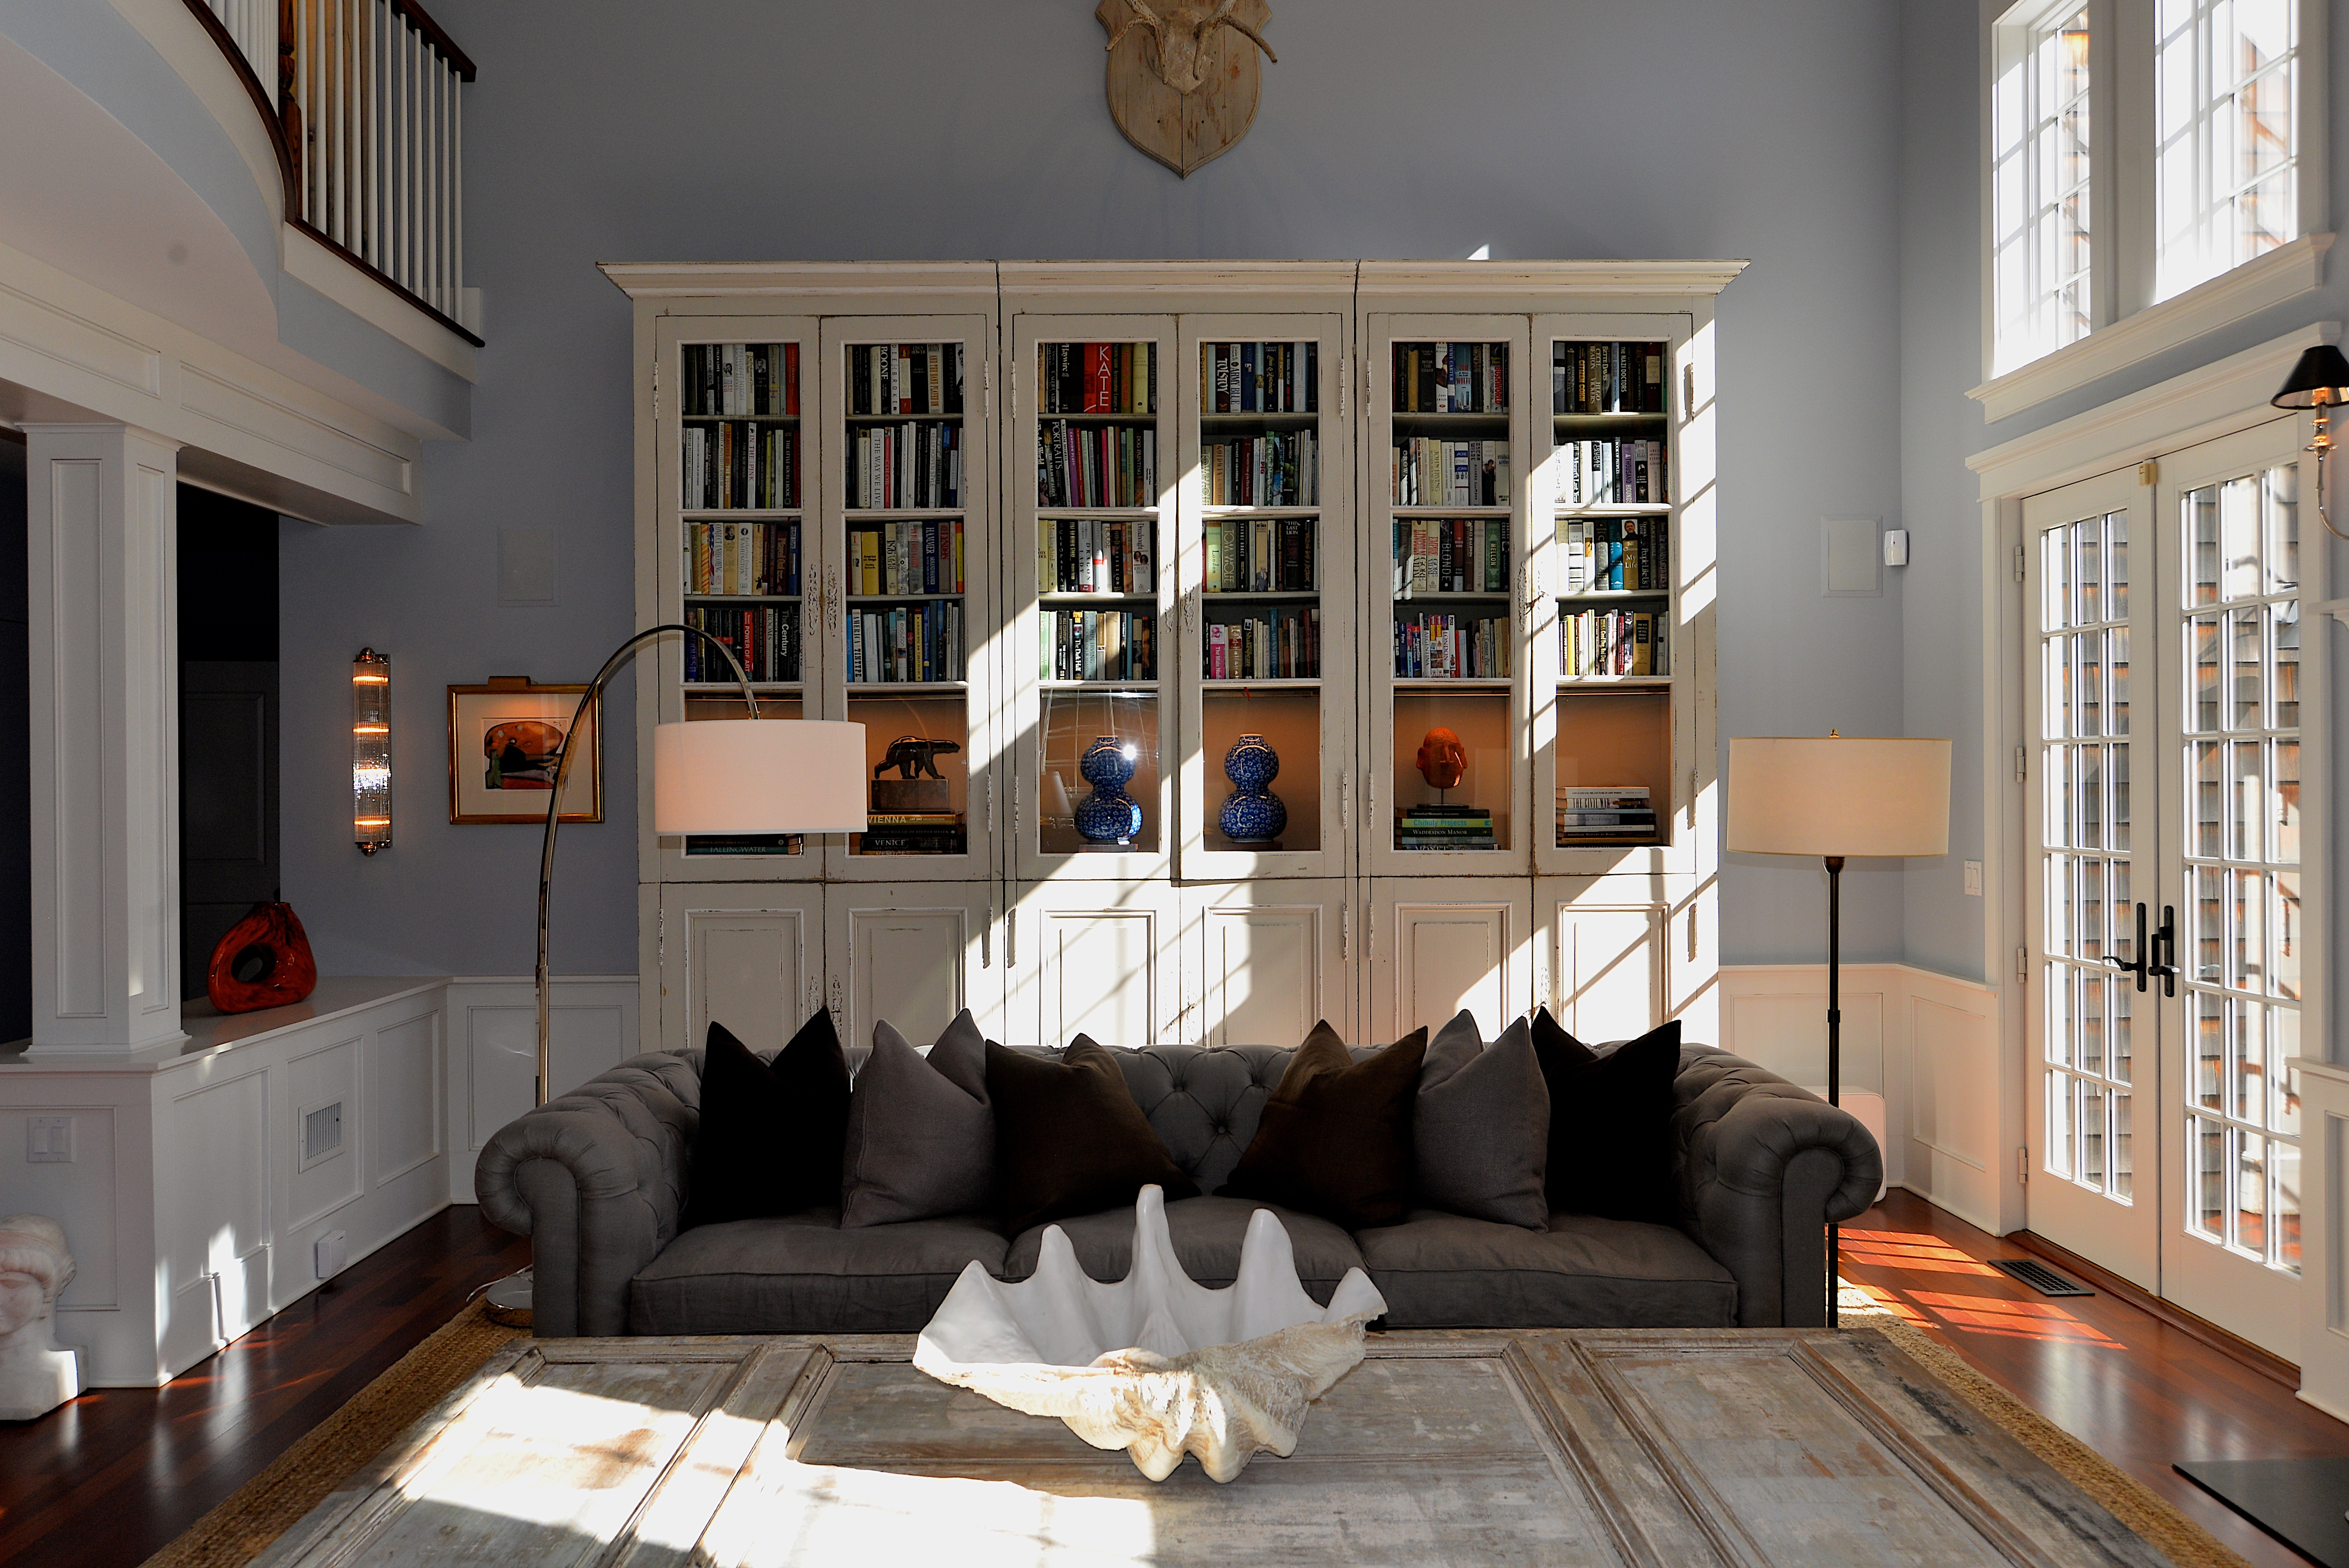 A nearly 12-foot-tall French country bookcase built in three sections and modified with lighting elements.